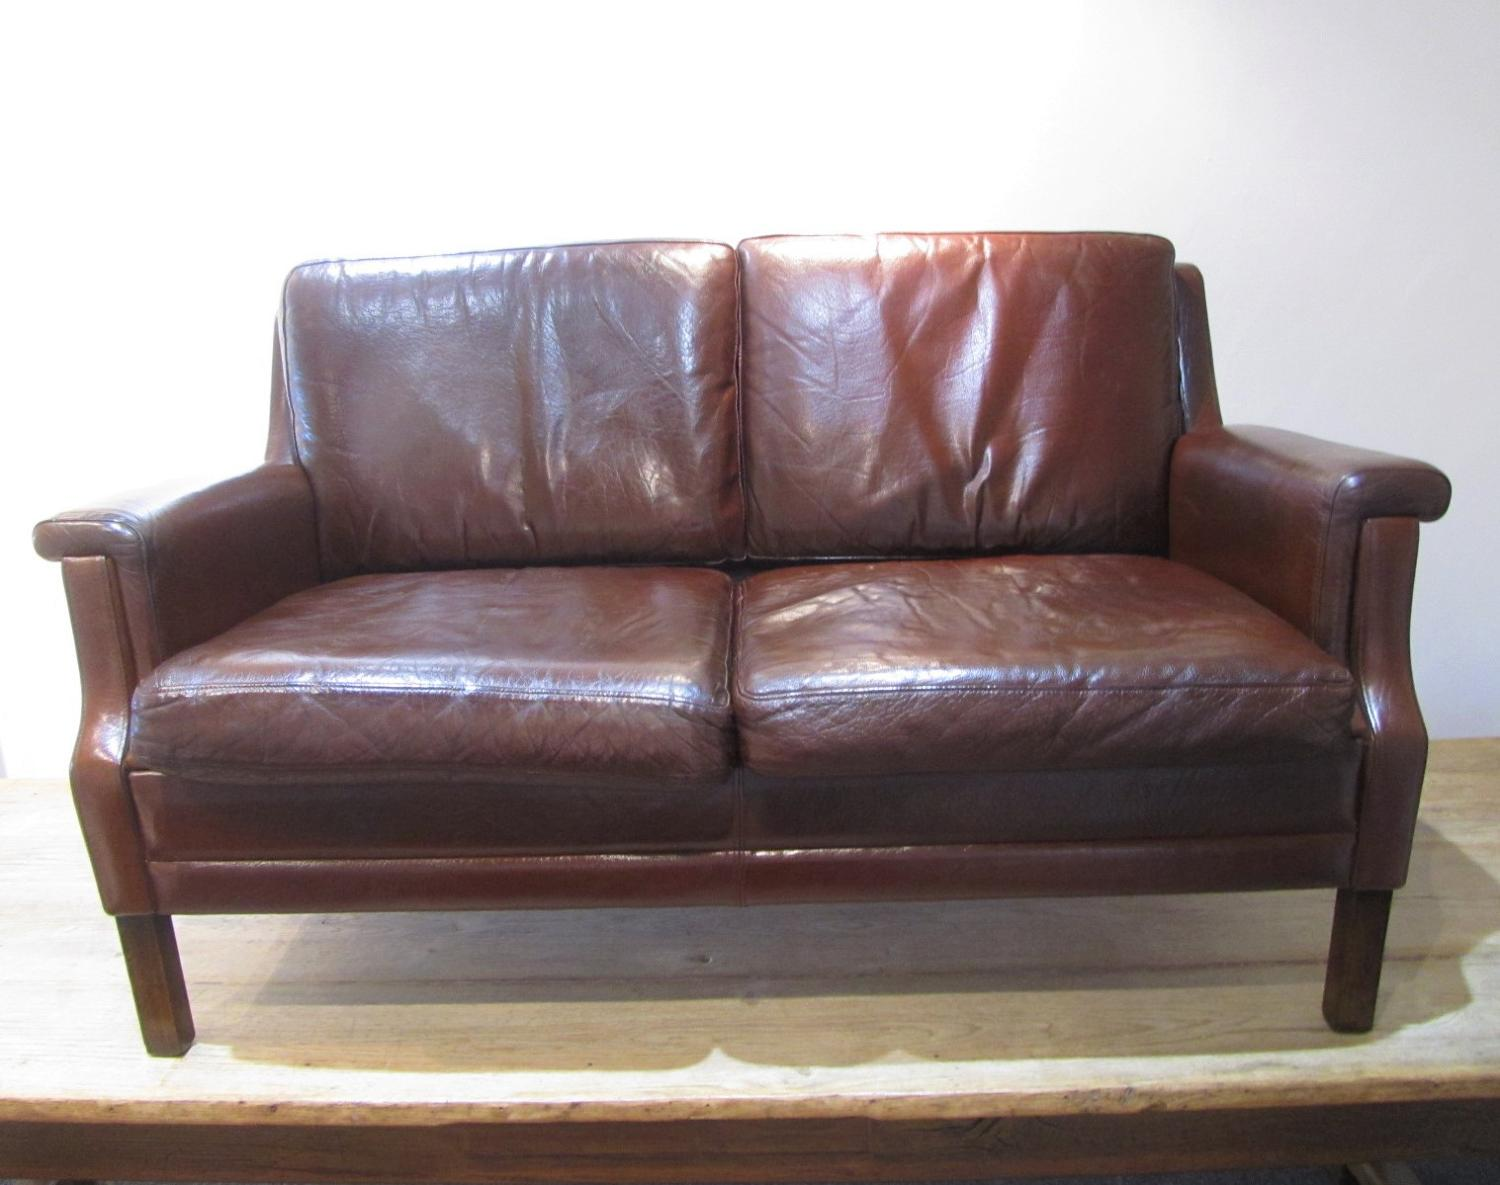 A Danish two seater leather sofa